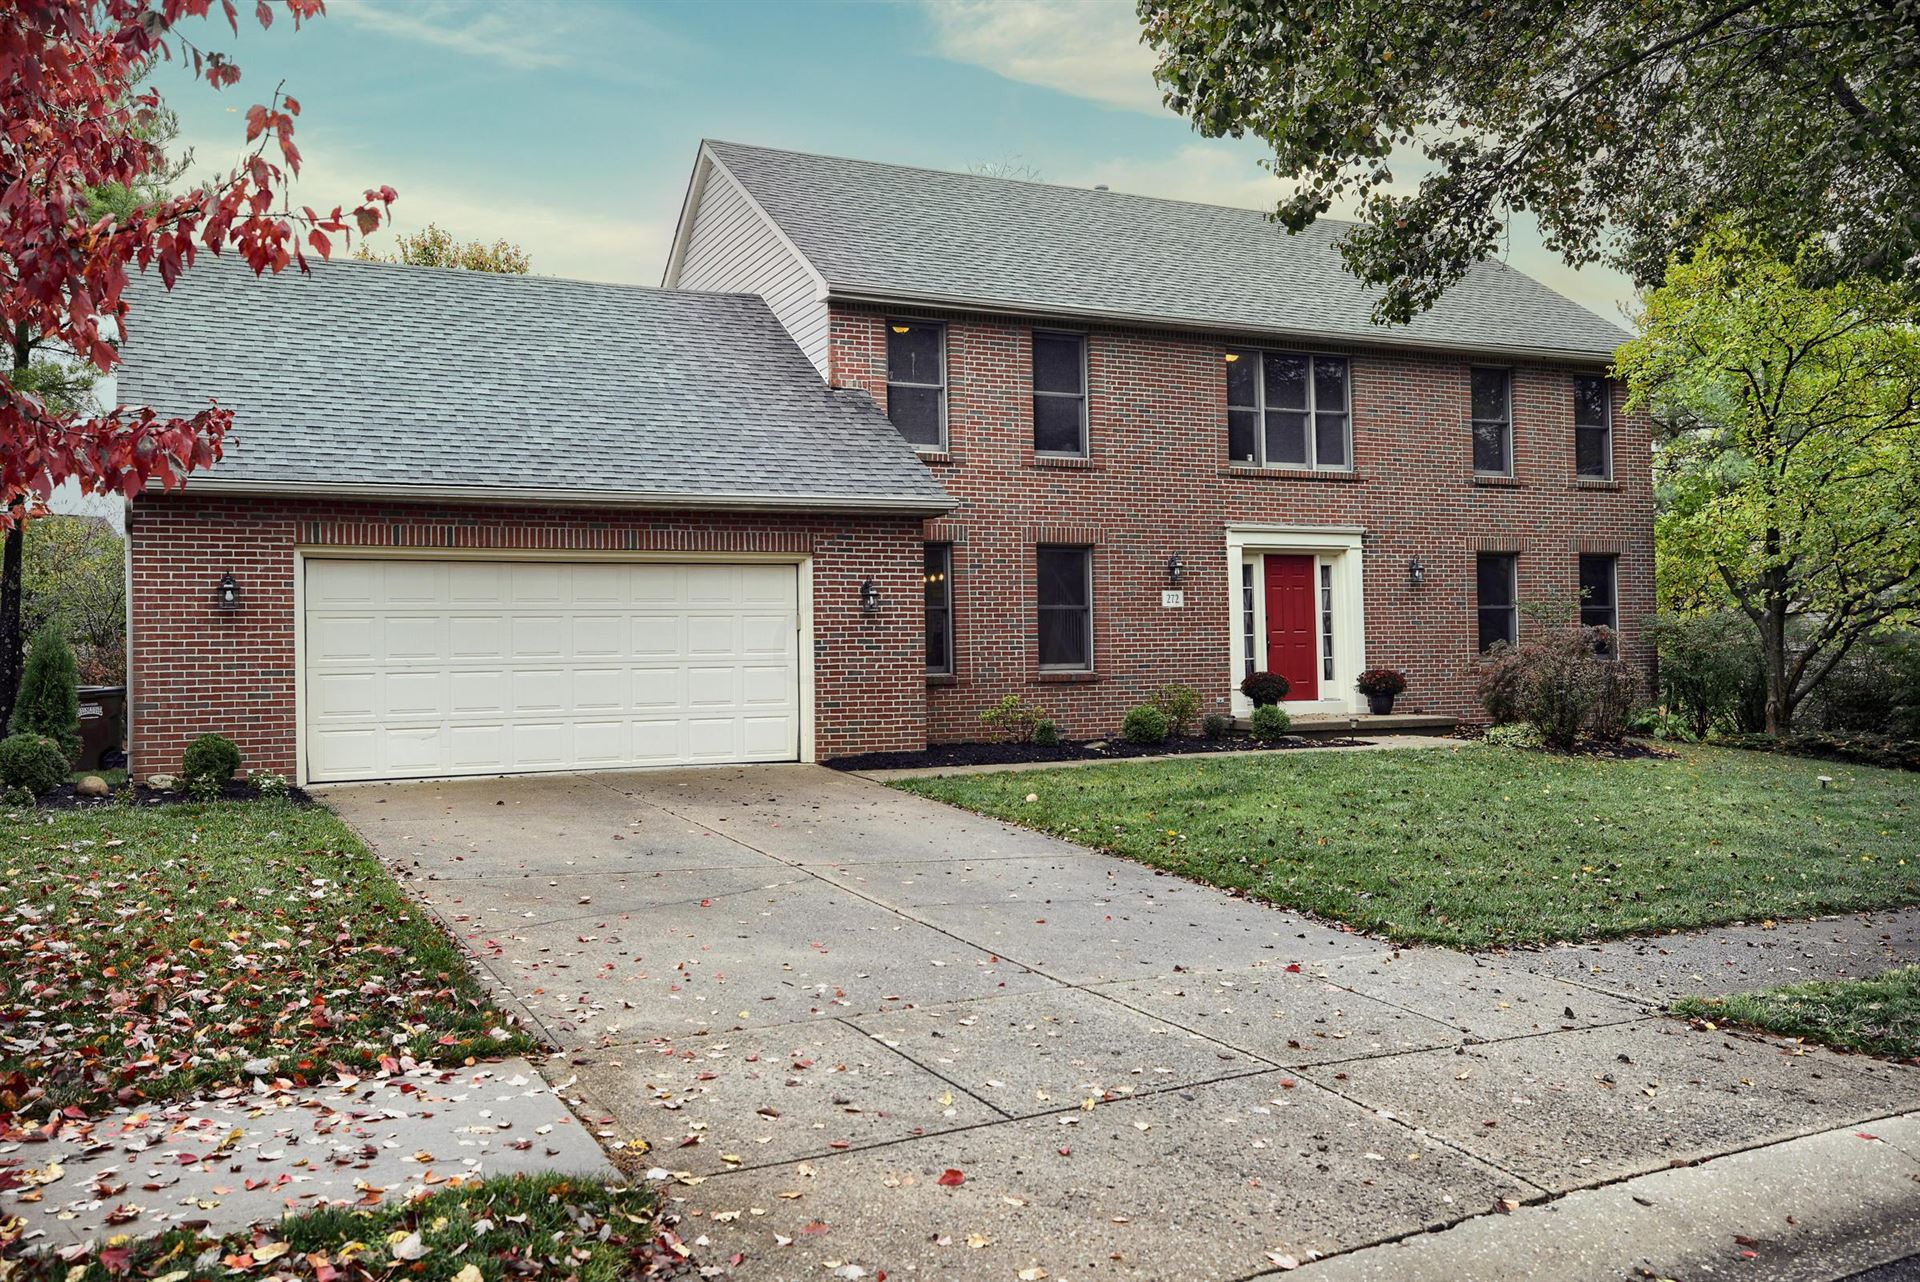 Photo of 272 Briarbend Boulevard, Powell, OH 43065 (MLS # 220037464)